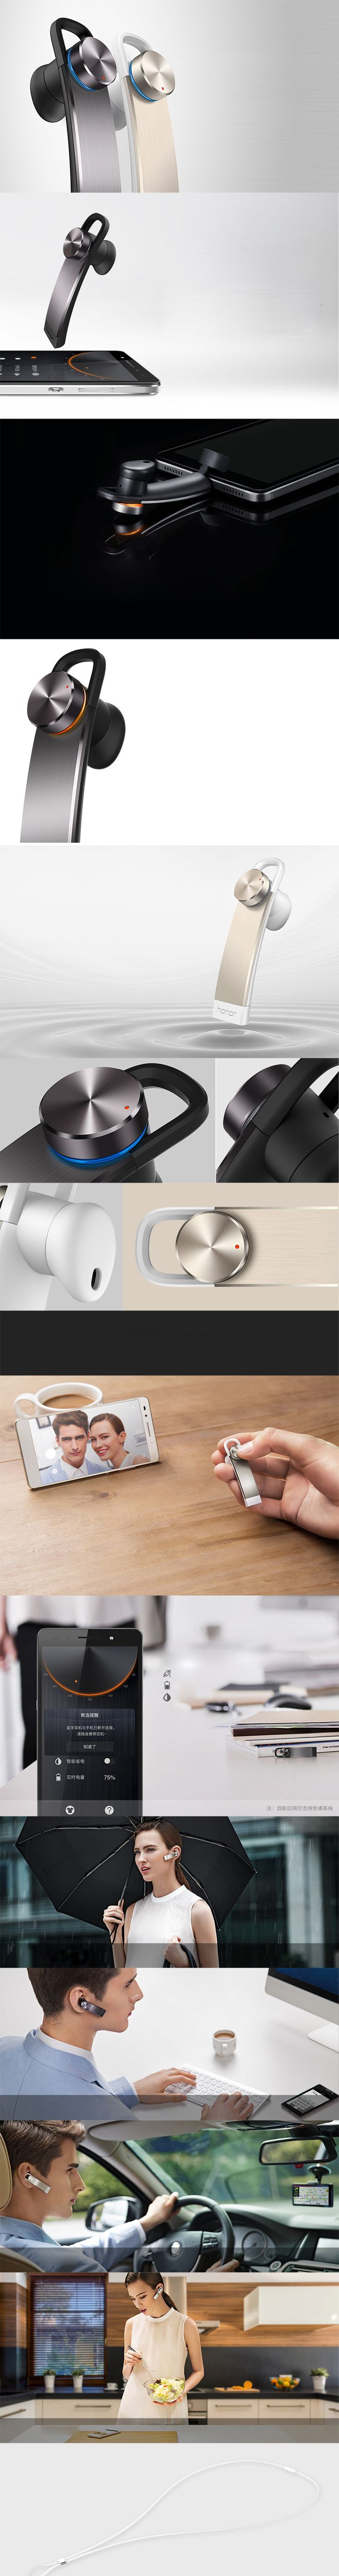 HUAWEI Honor Whistle AM07 Voice Control Fast Charging Bluetooth Earphone for…